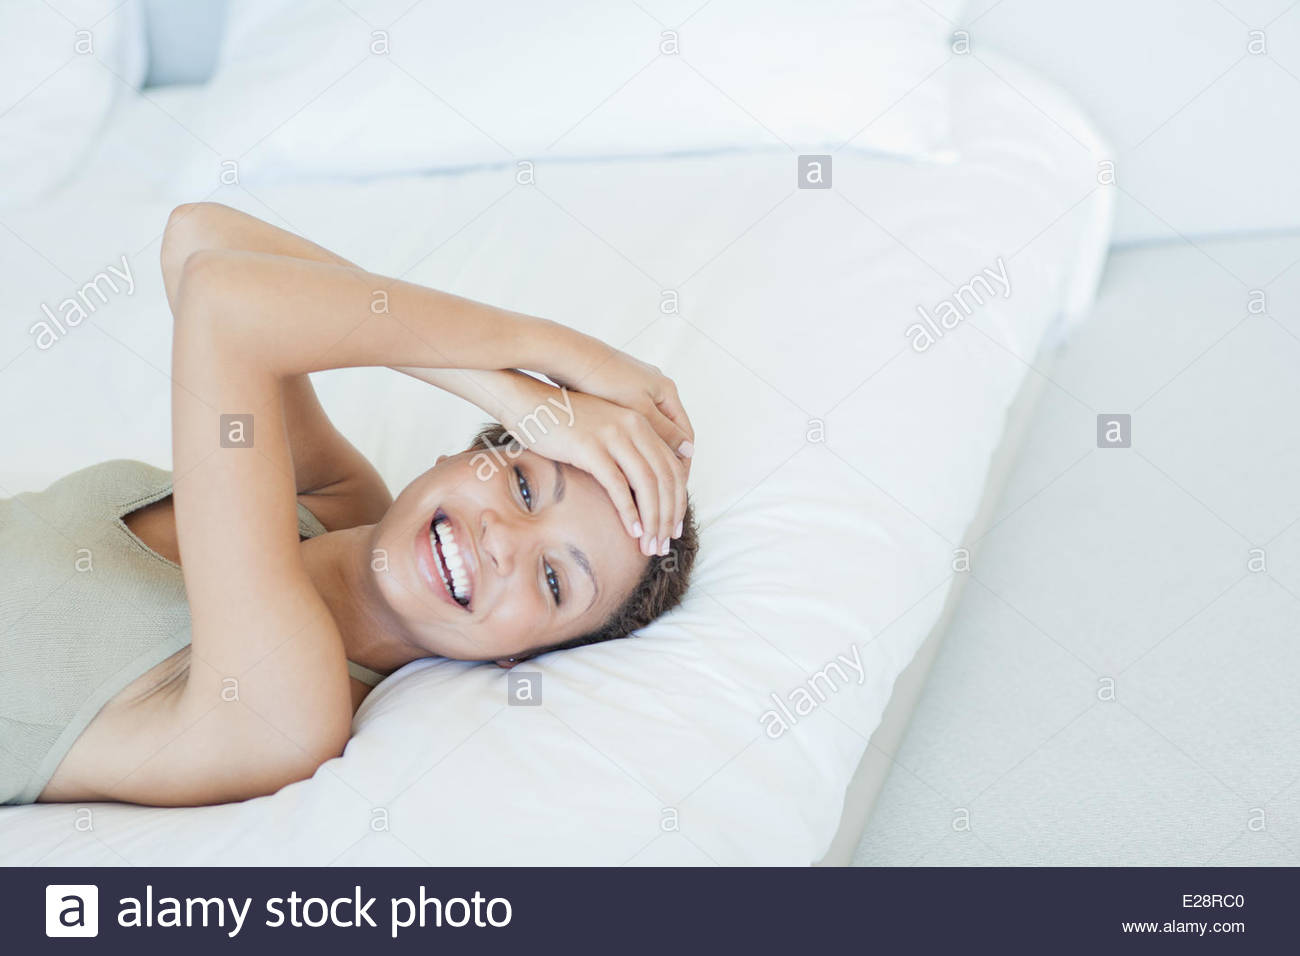 Smiling woman lying on bed - Stock Image